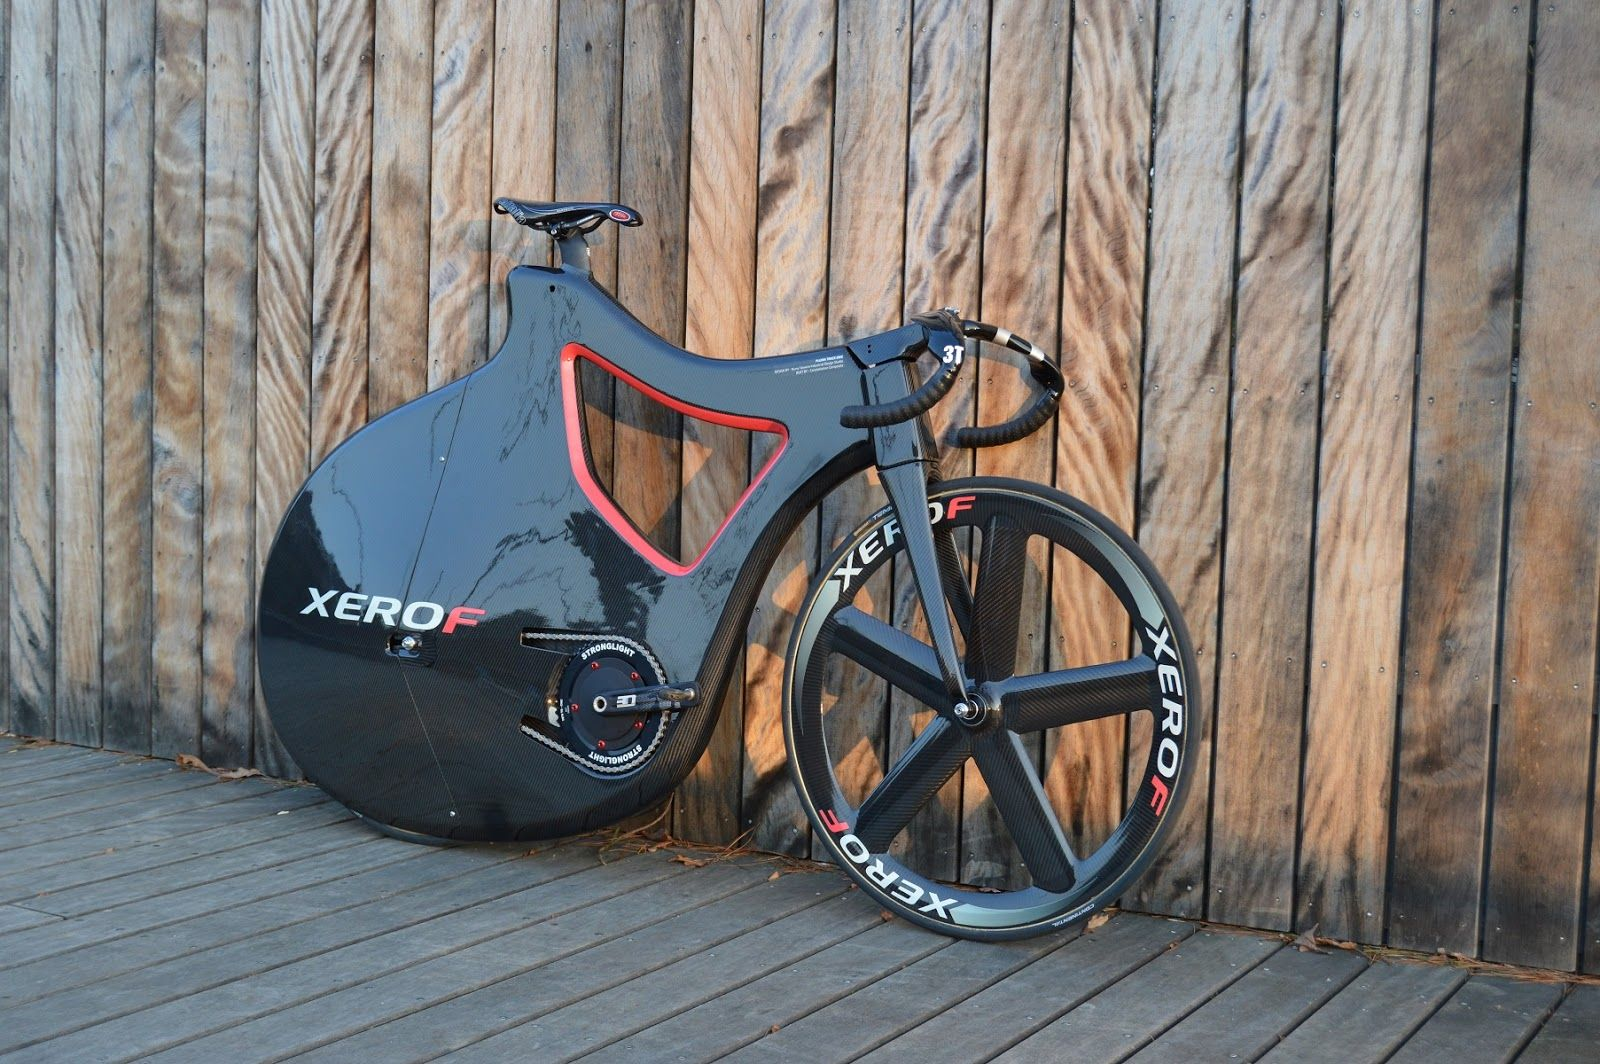 Pin by Adam Williams on FIX FIX BICYCLE | Pinterest | Bicycling ...